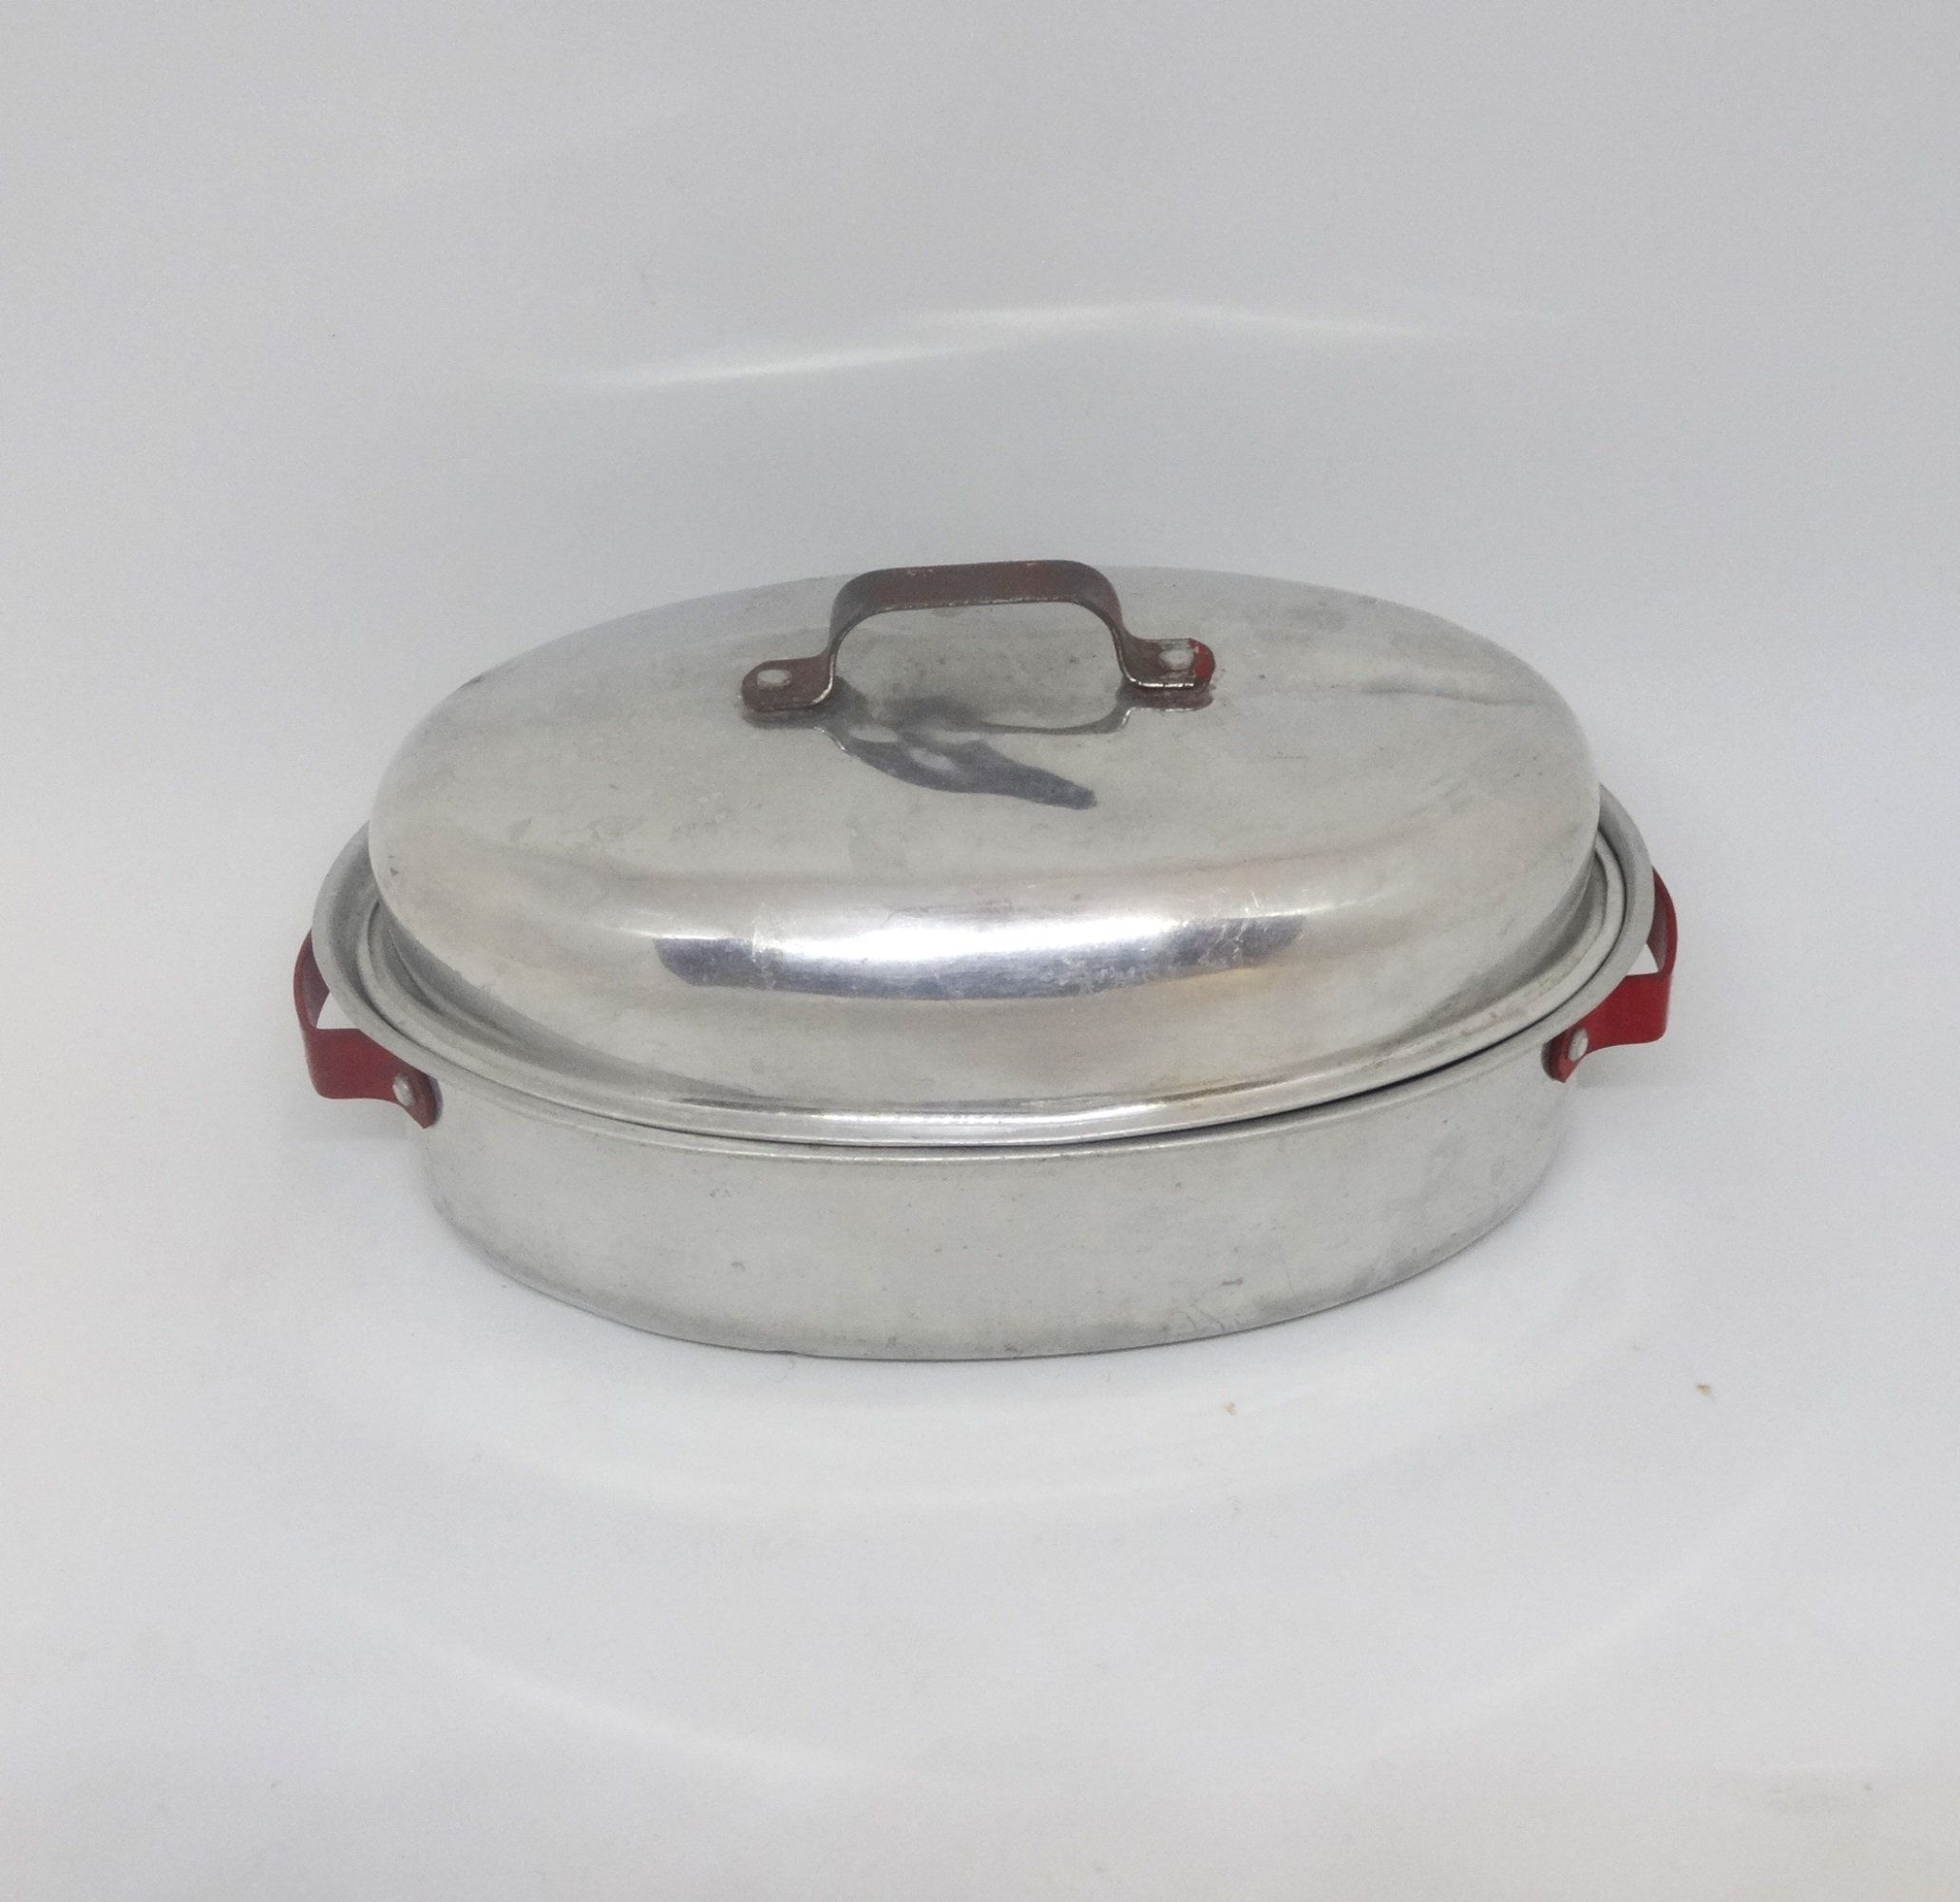 Aluminum toy roasting pan with lid and red handles 6